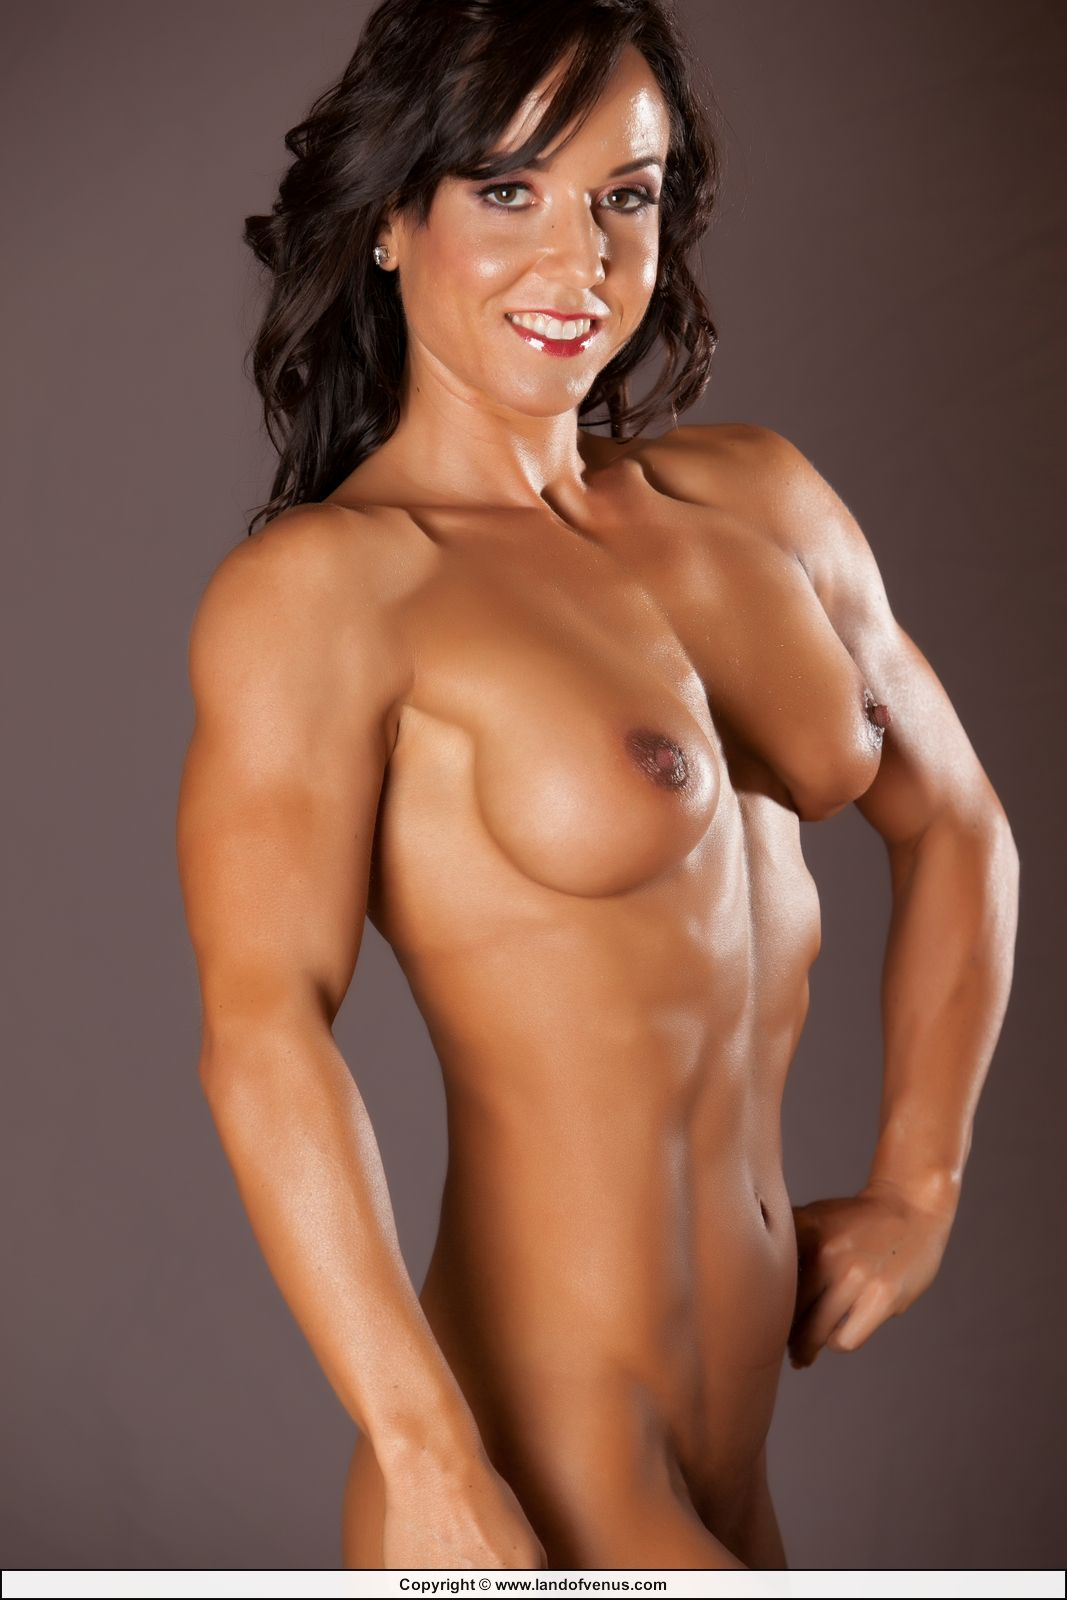 Suggest you Hot nude bodybuilders women simply excellent